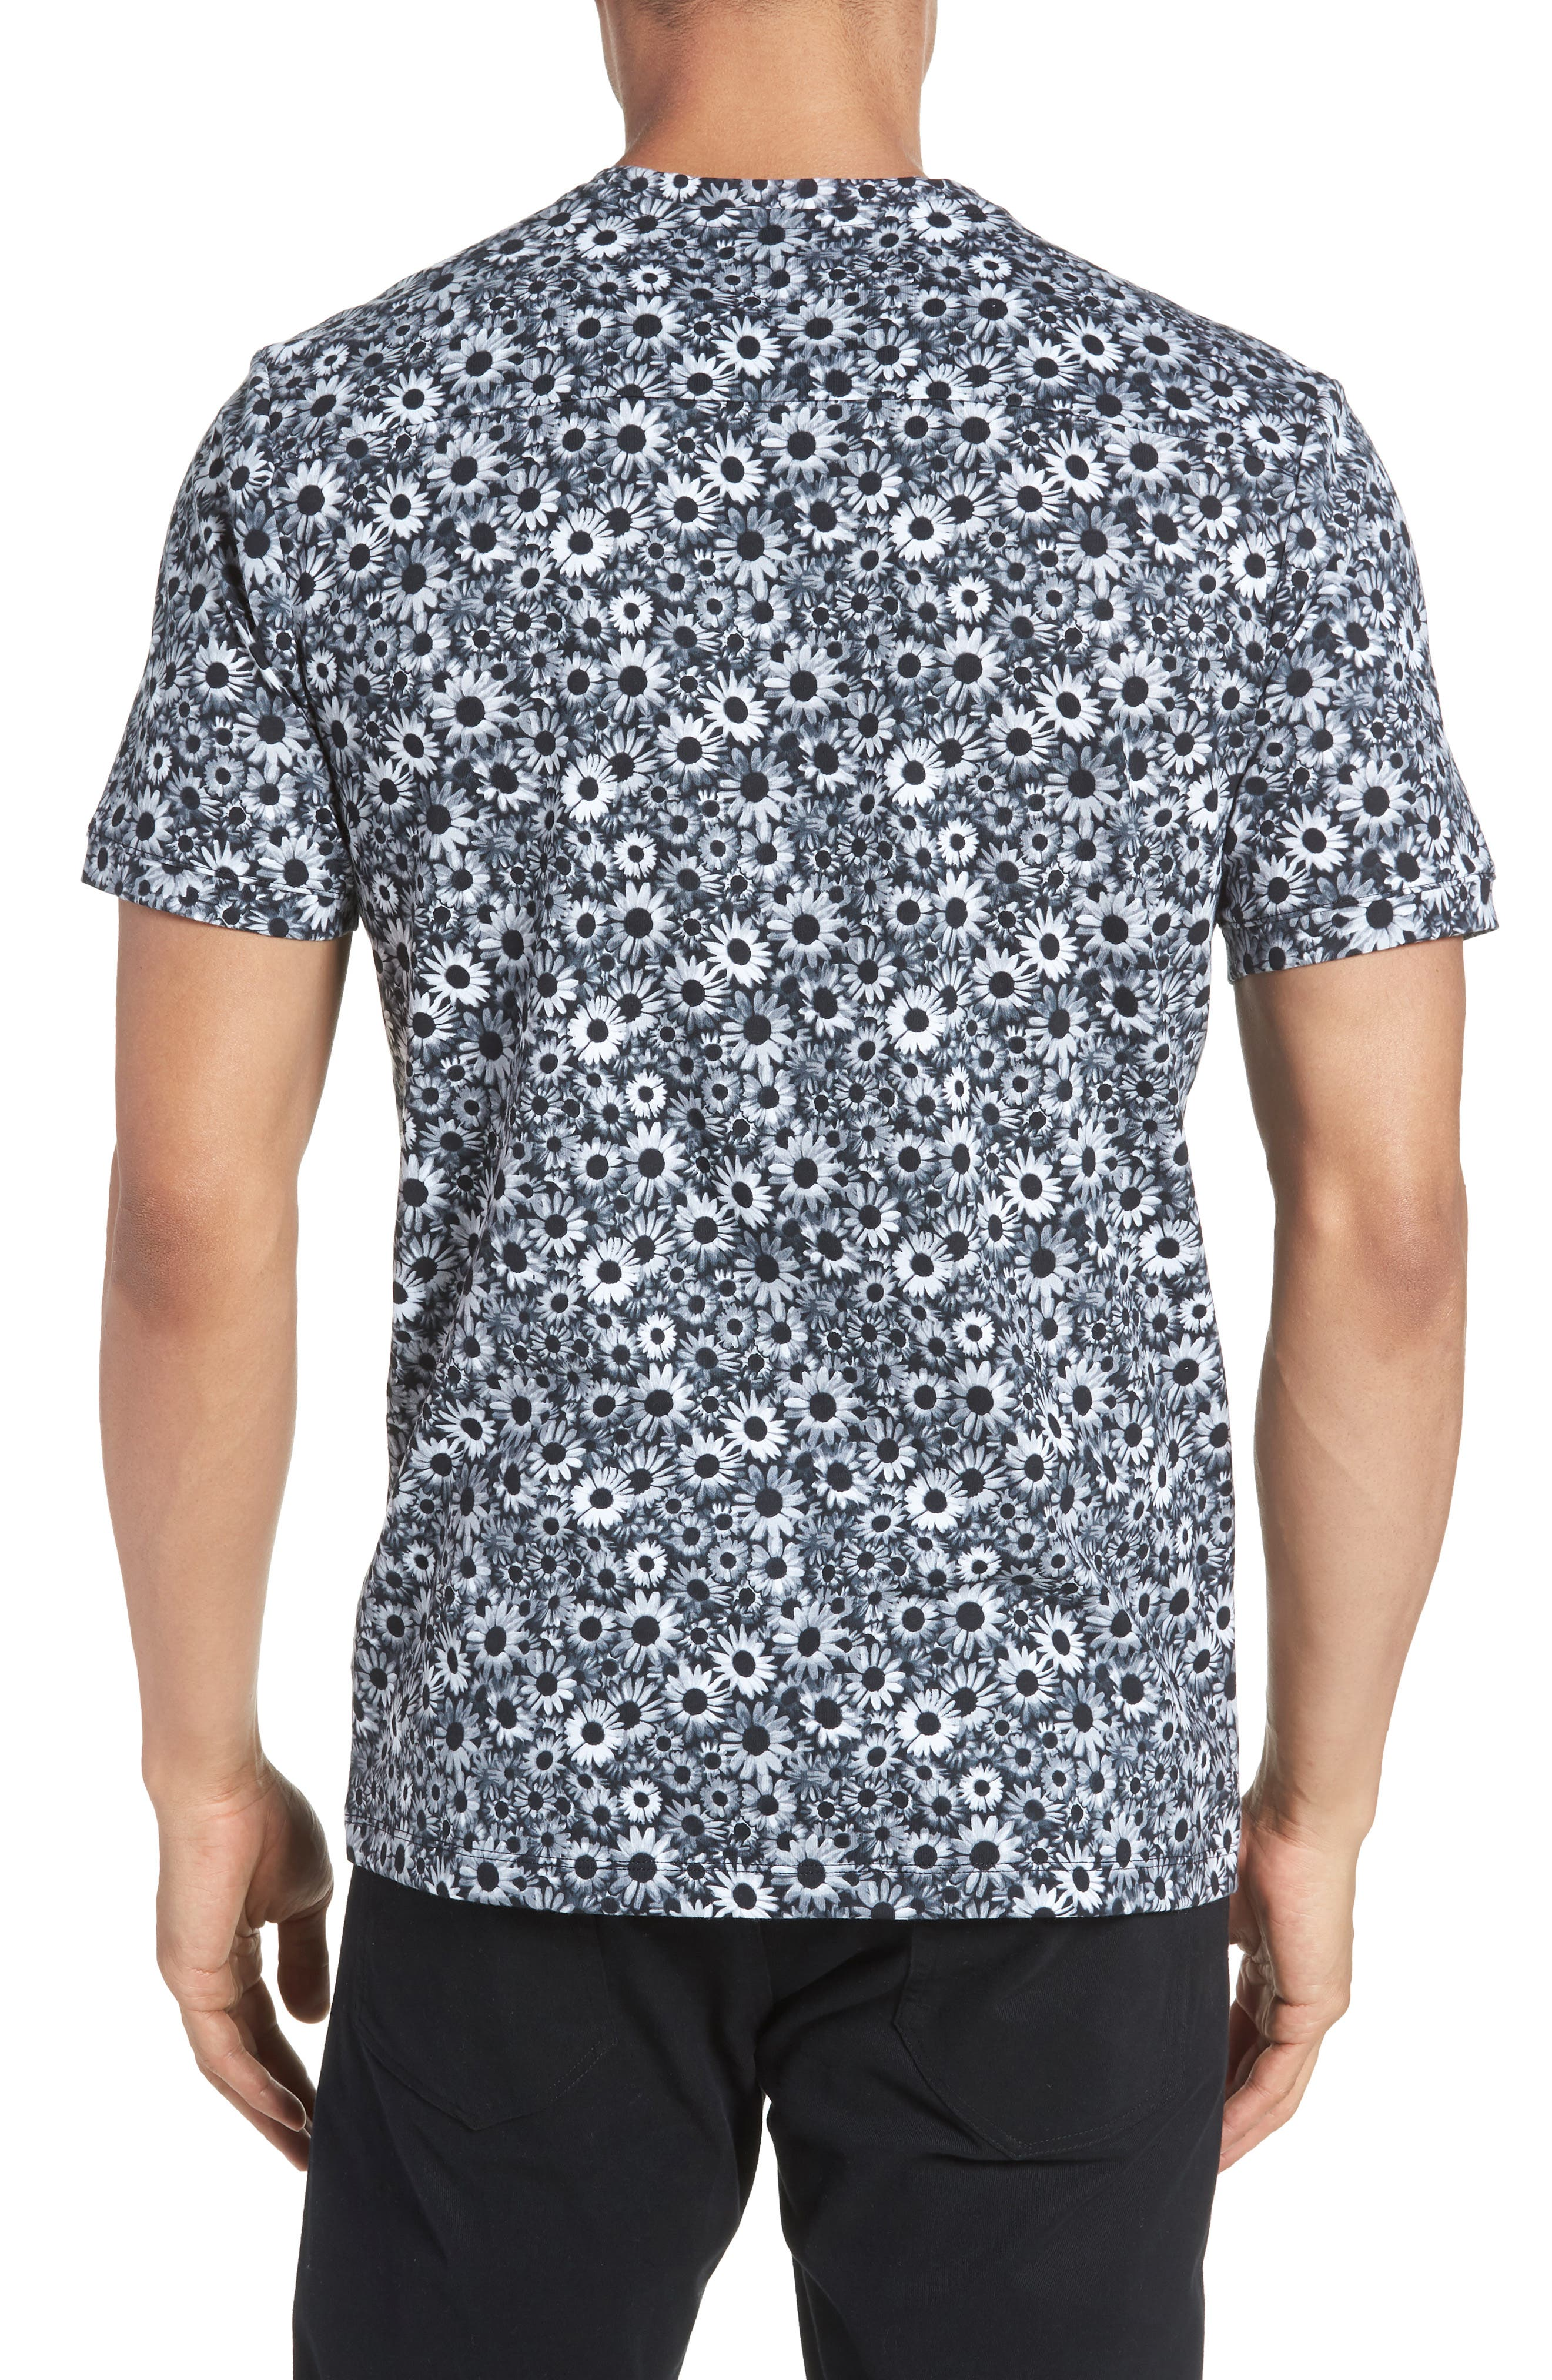 Print T-Shirt,                             Alternate thumbnail 2, color,                             Black White Daisy Floral